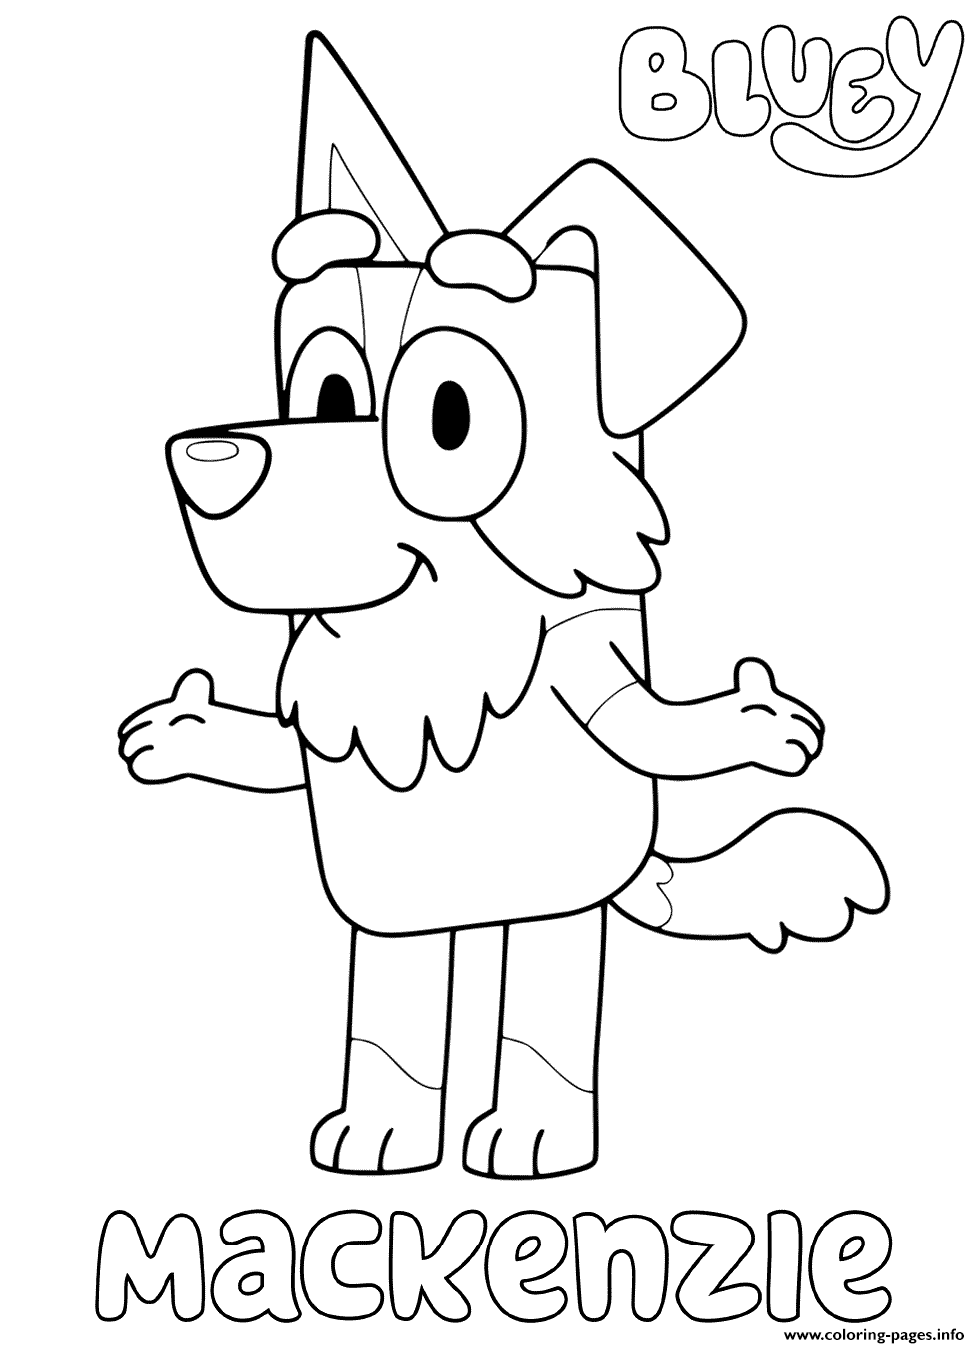 Mackenzie From Blueys coloring pages